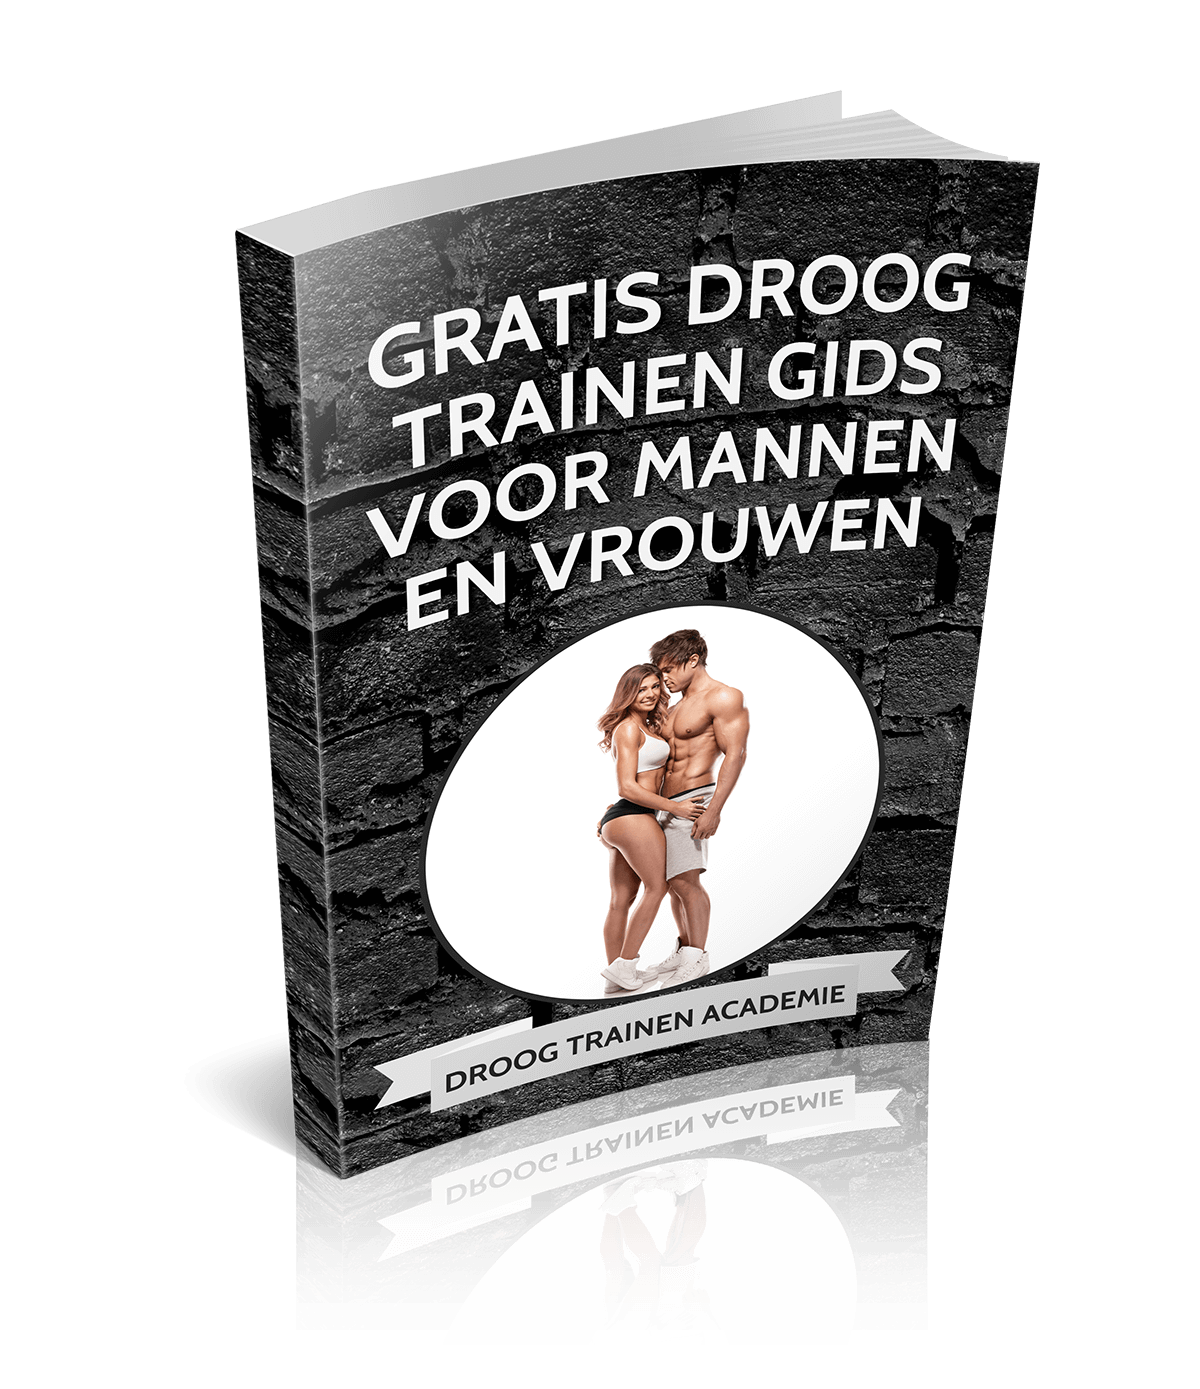 http://www.droogtrainenacademie.nl/wp-content/uploads/2016/10/FREE__5_EXTRA_3D_cover2.png